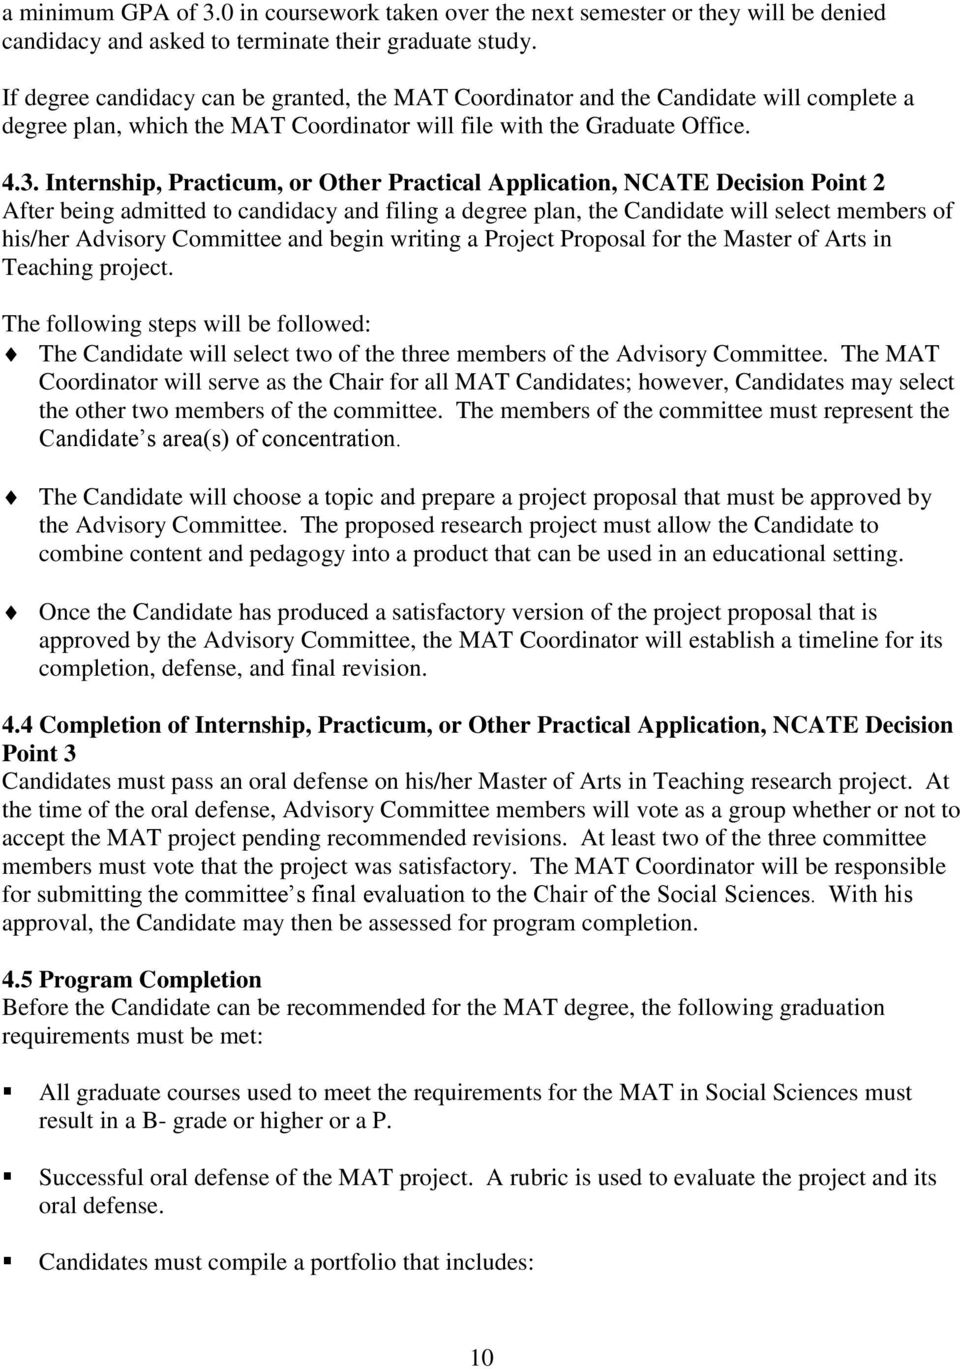 Internship, Practicum, or Other Practical Application, NCATE Decision Point 2 After being admitted to candidacy and filing a degree plan, the Candidate will select members of his/her Advisory